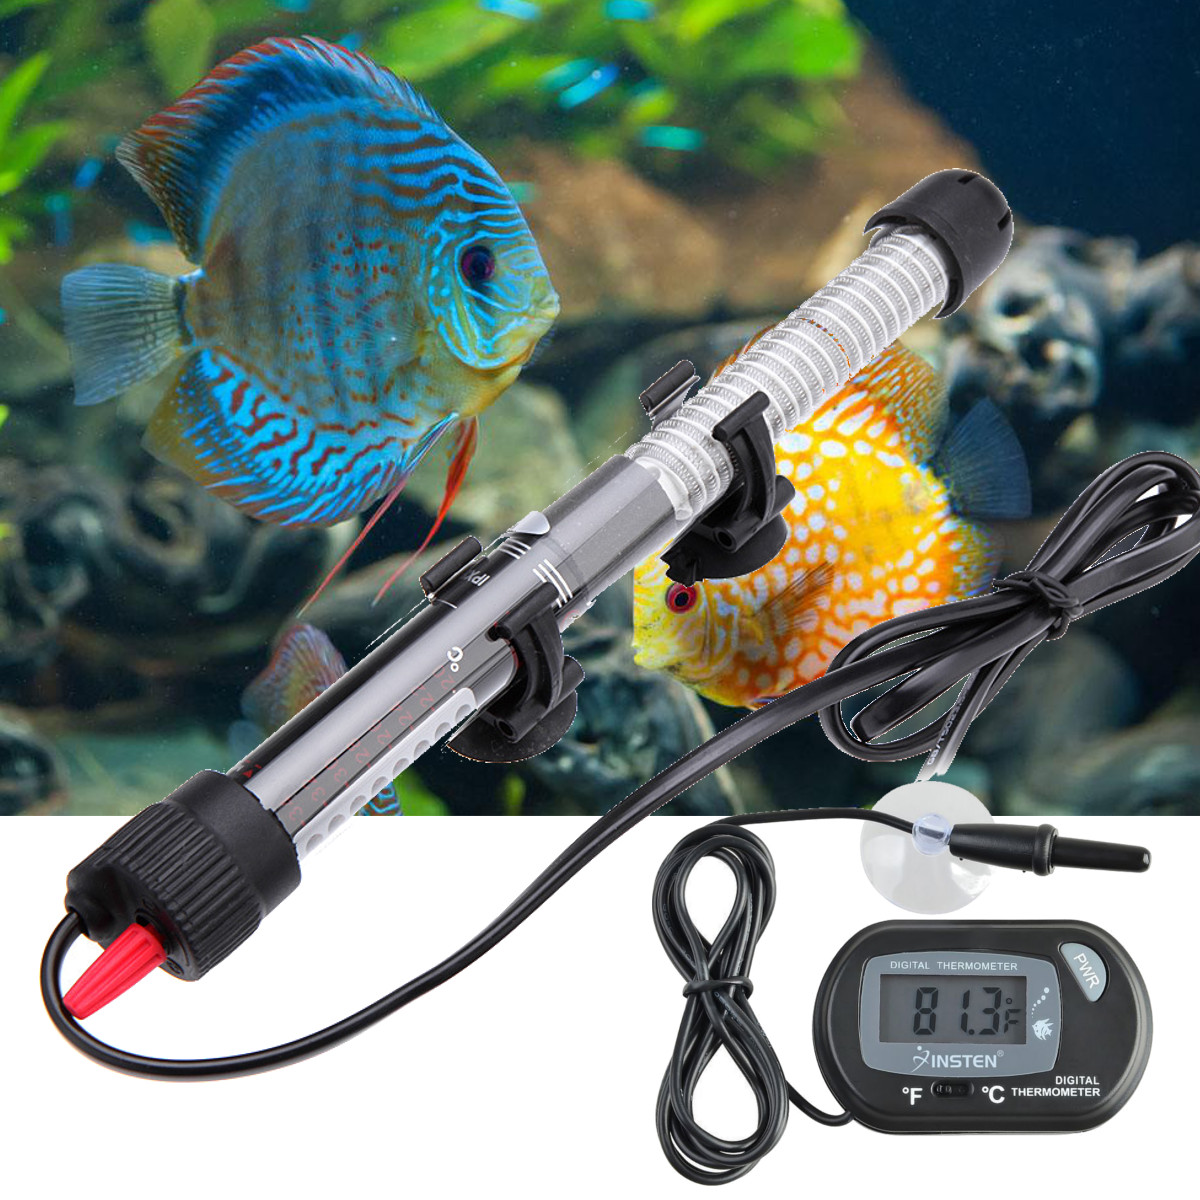 Moaere 100/200/300W Aquarium Submersible Water Heater Rod Fish Tank with LCD Thermometer